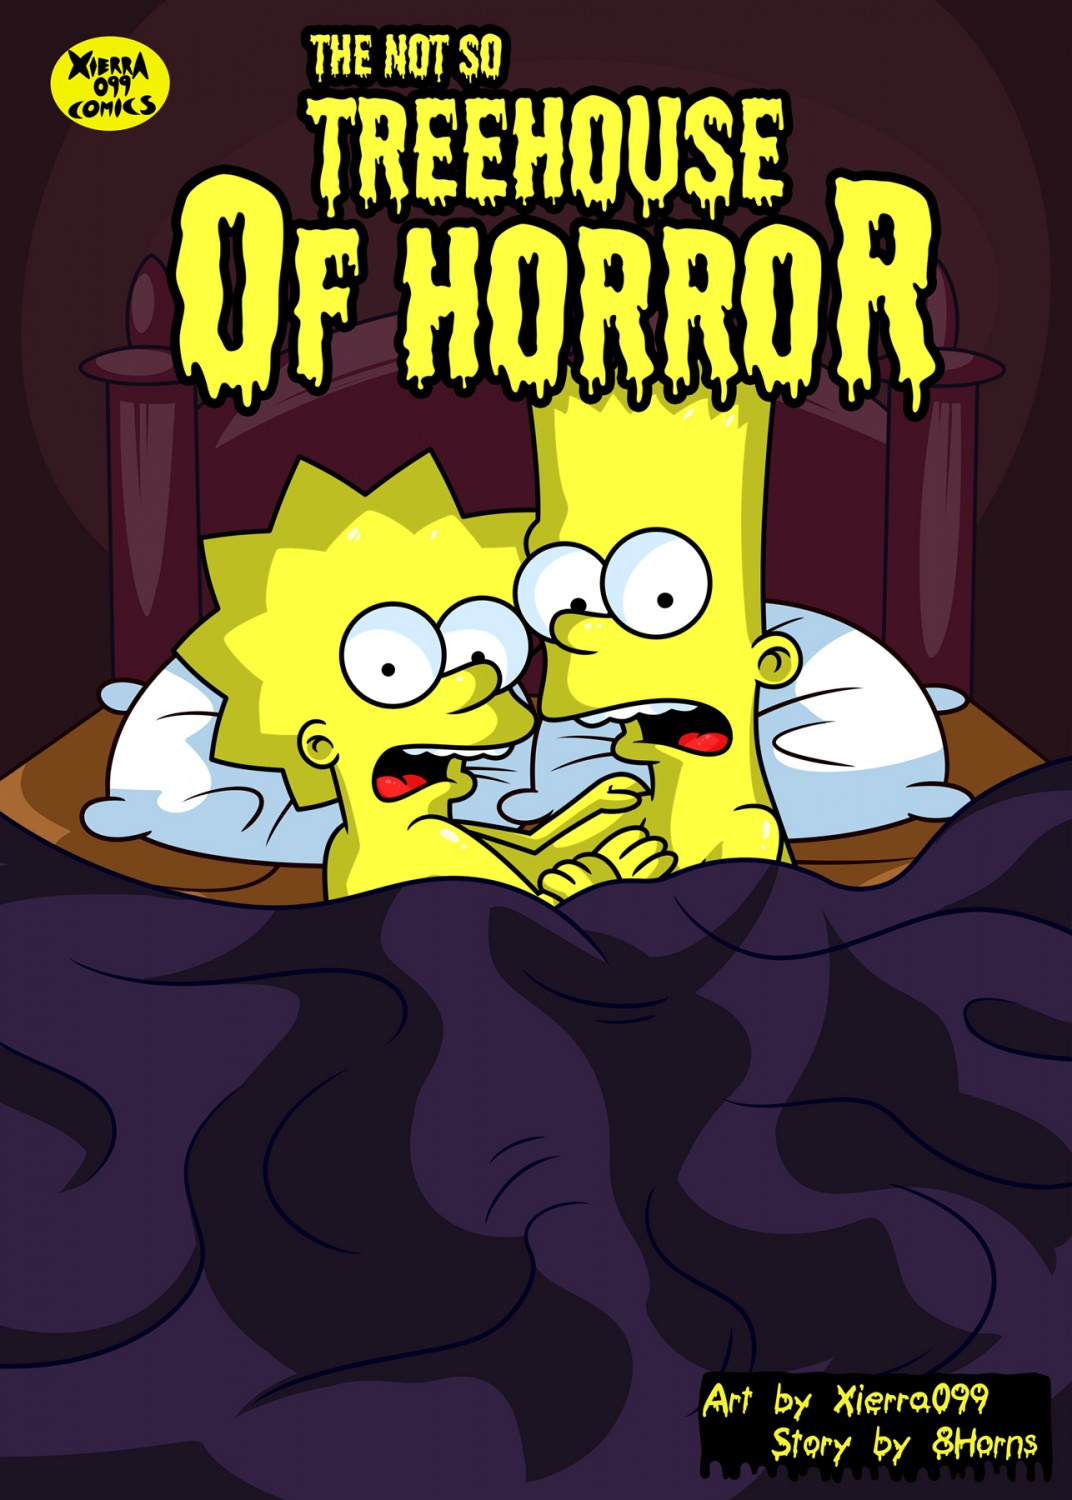 Not so Treehouse of Horror- The Simpsons image 1